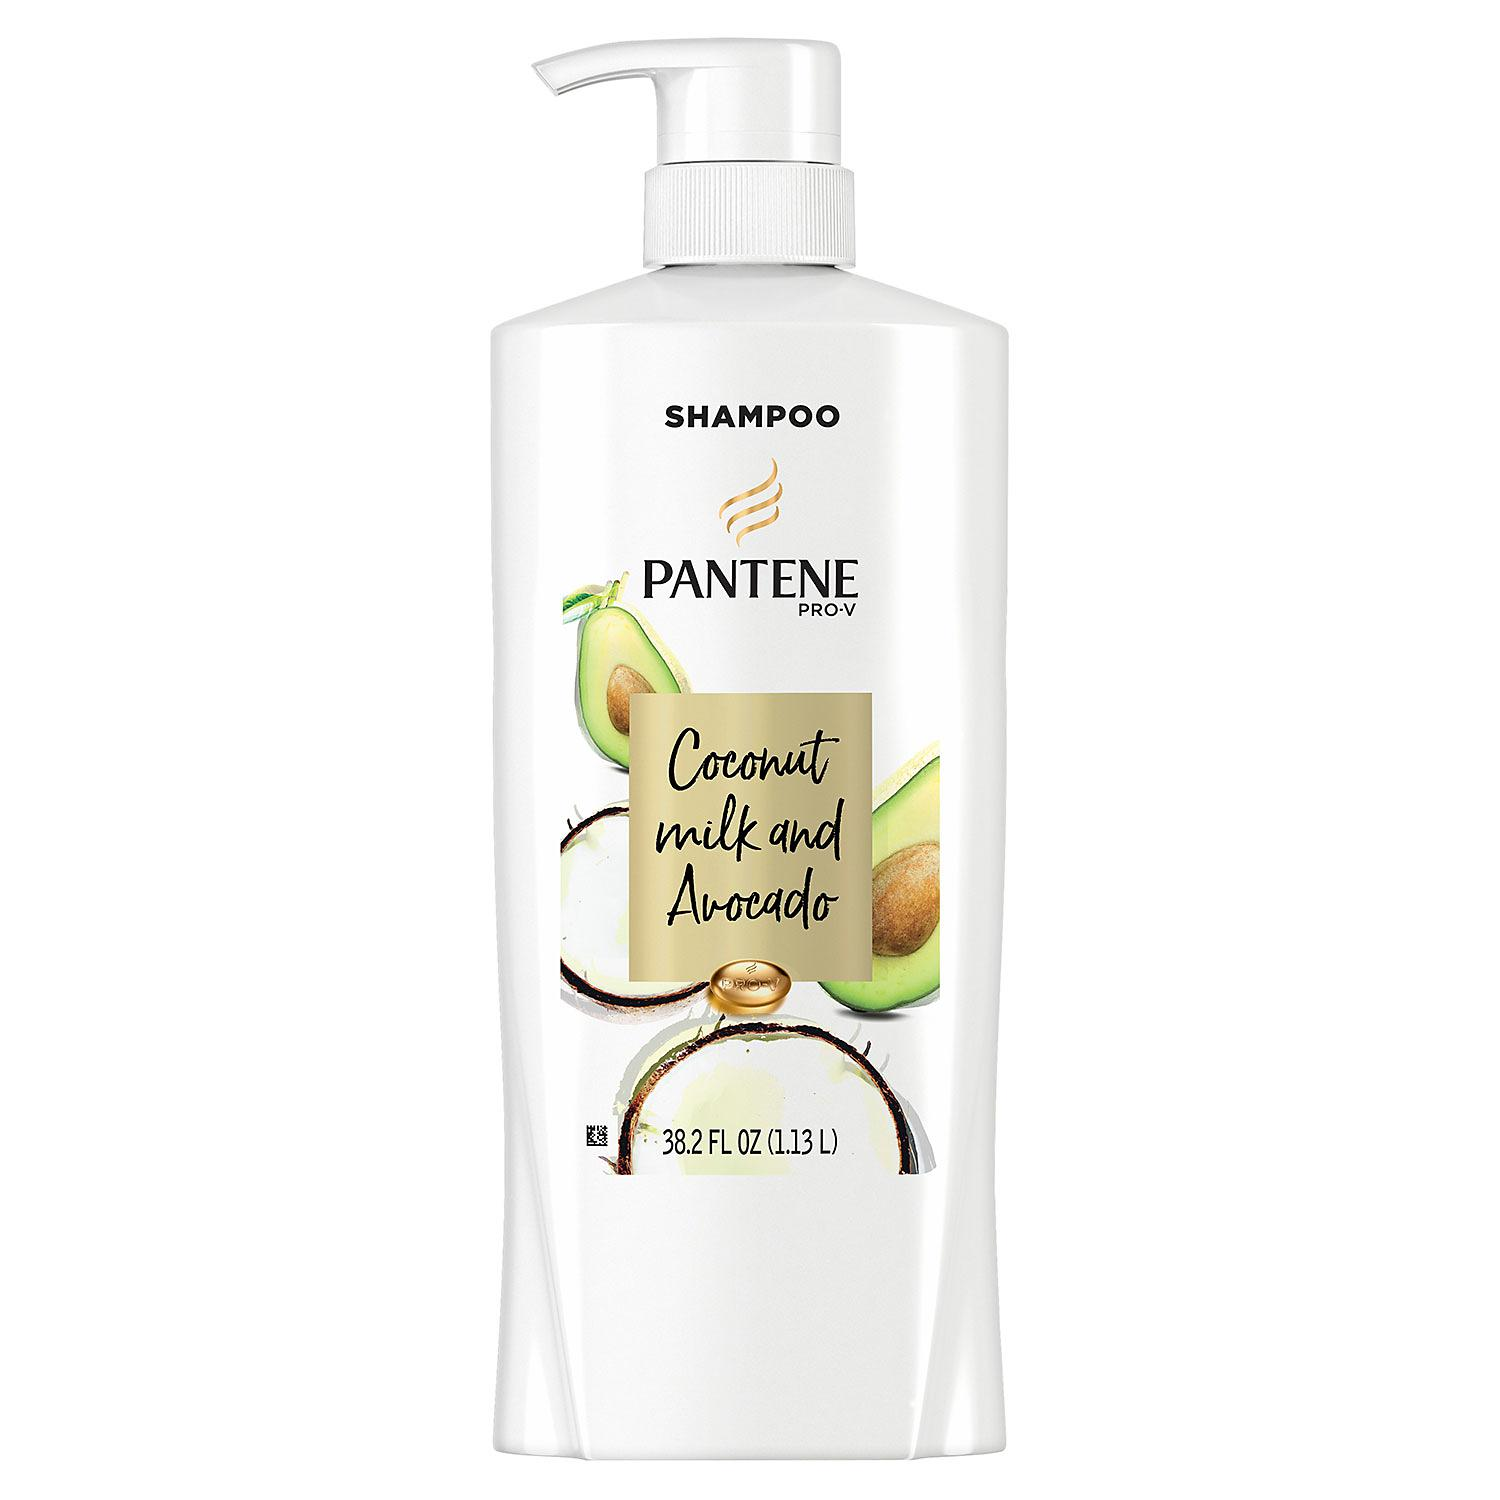 Dầu gội Pantene Pro-V Coconut Milk and Avocado, 1.13L